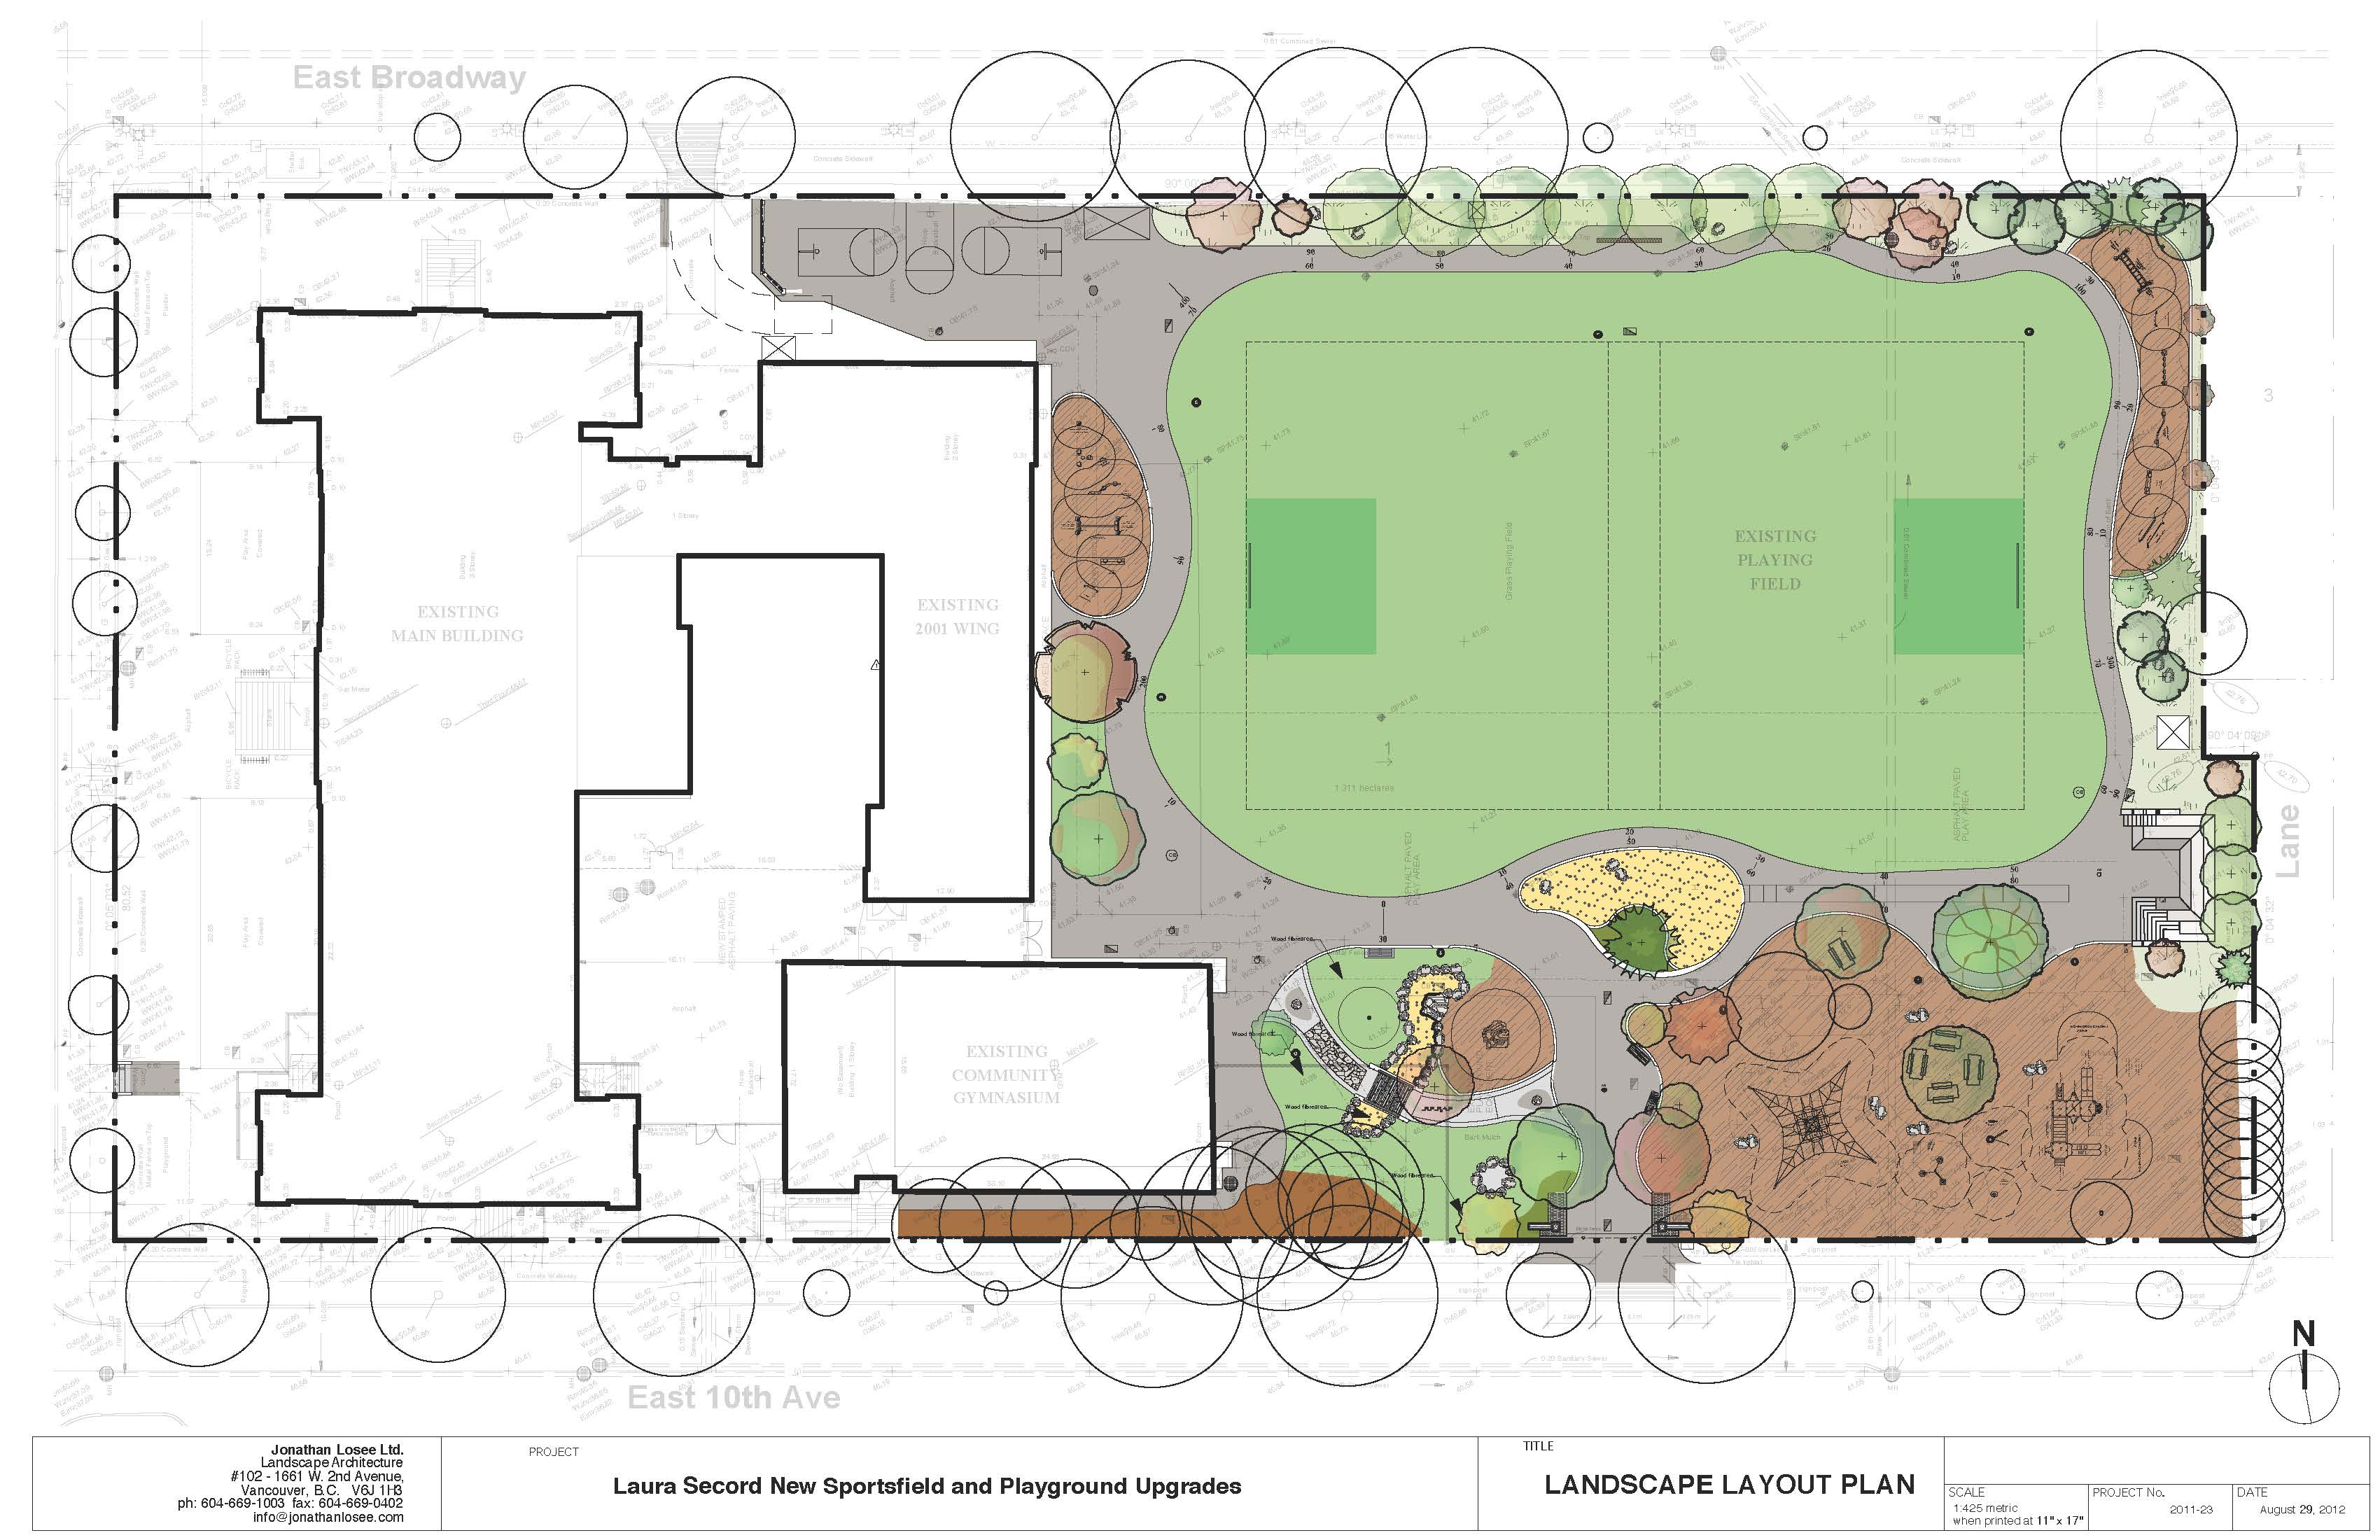 Layout plan for Laura Secord Elementary School, Vancouver (Image: Jonathan Losee Ltd. Landscape Architecture)